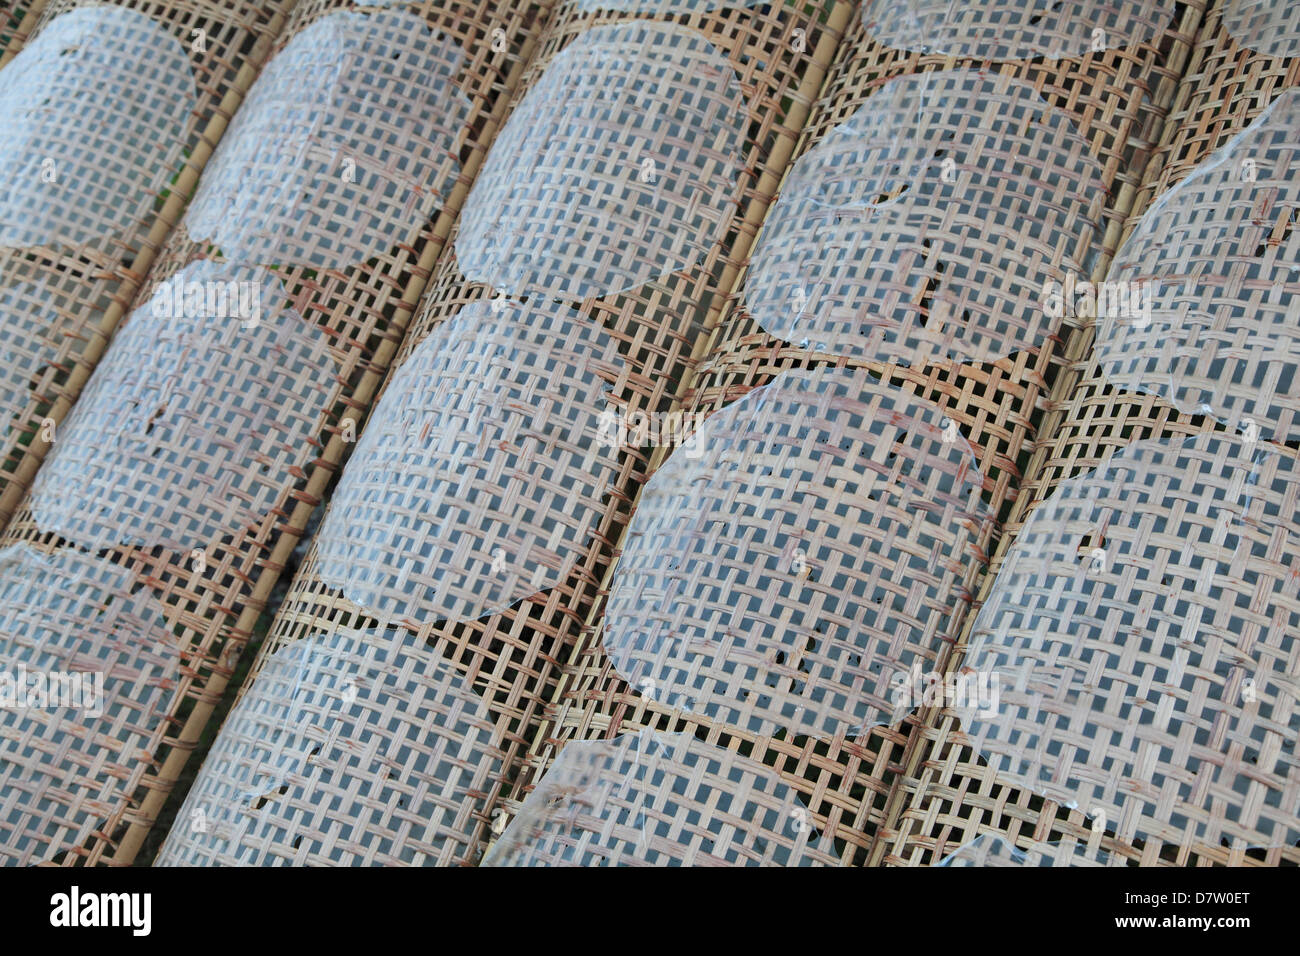 Rice paper crepes drying, Cu Lao May, Mekong Delta, Vinh Long Province, Vietnam, Indochina, Southeast Asia - Stock Image